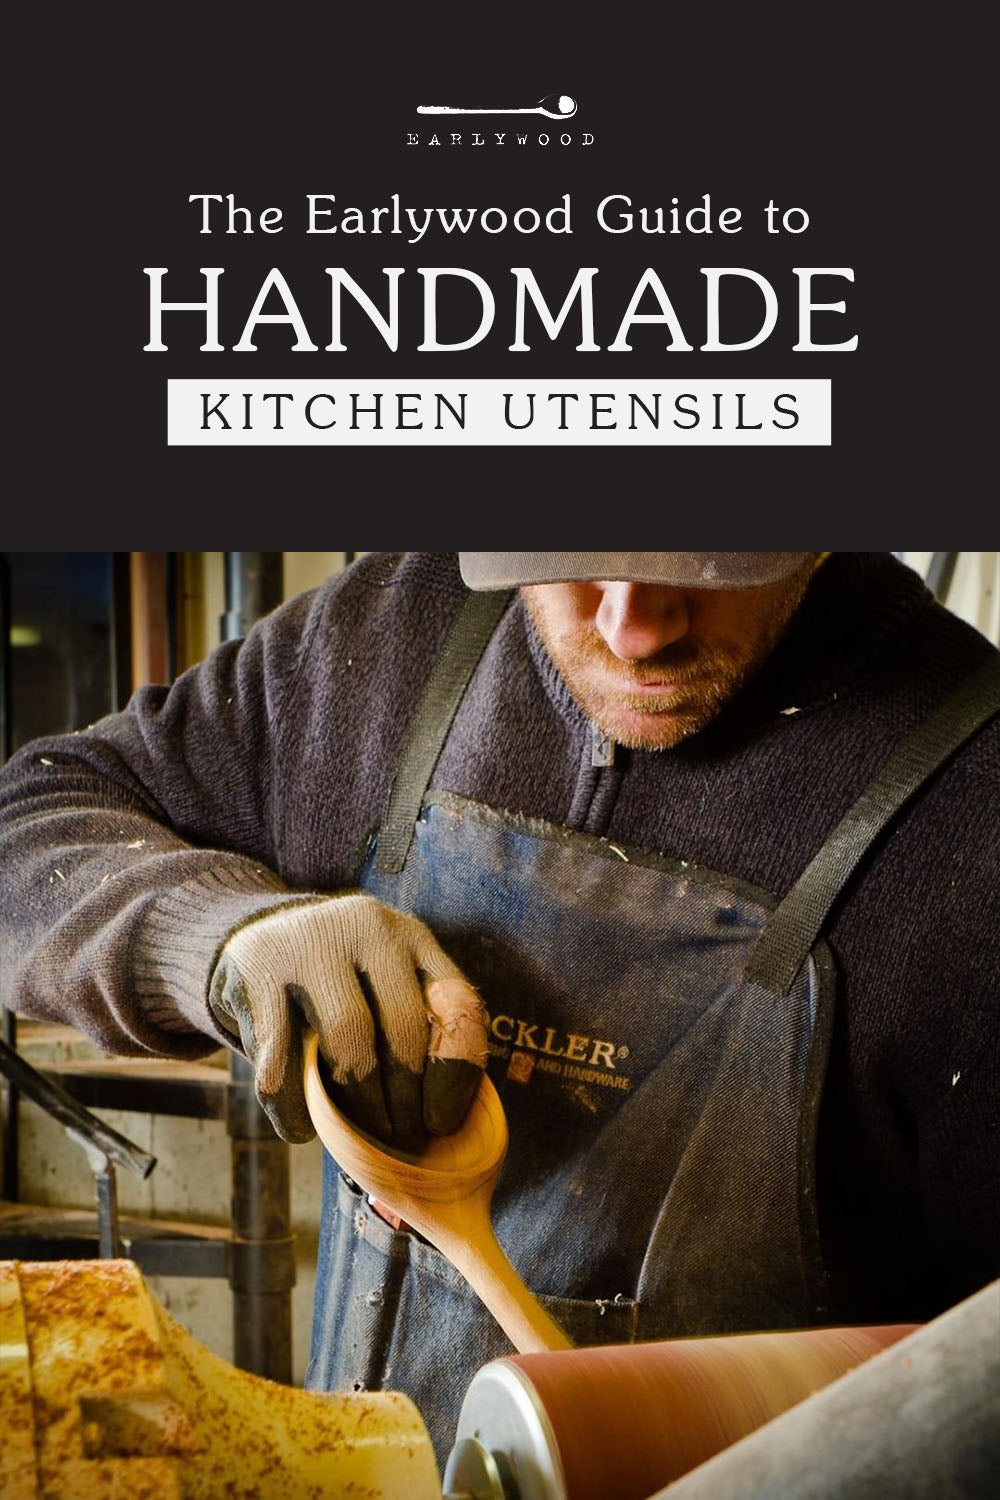 Earlywood's process on the best handmade kitchen utensils